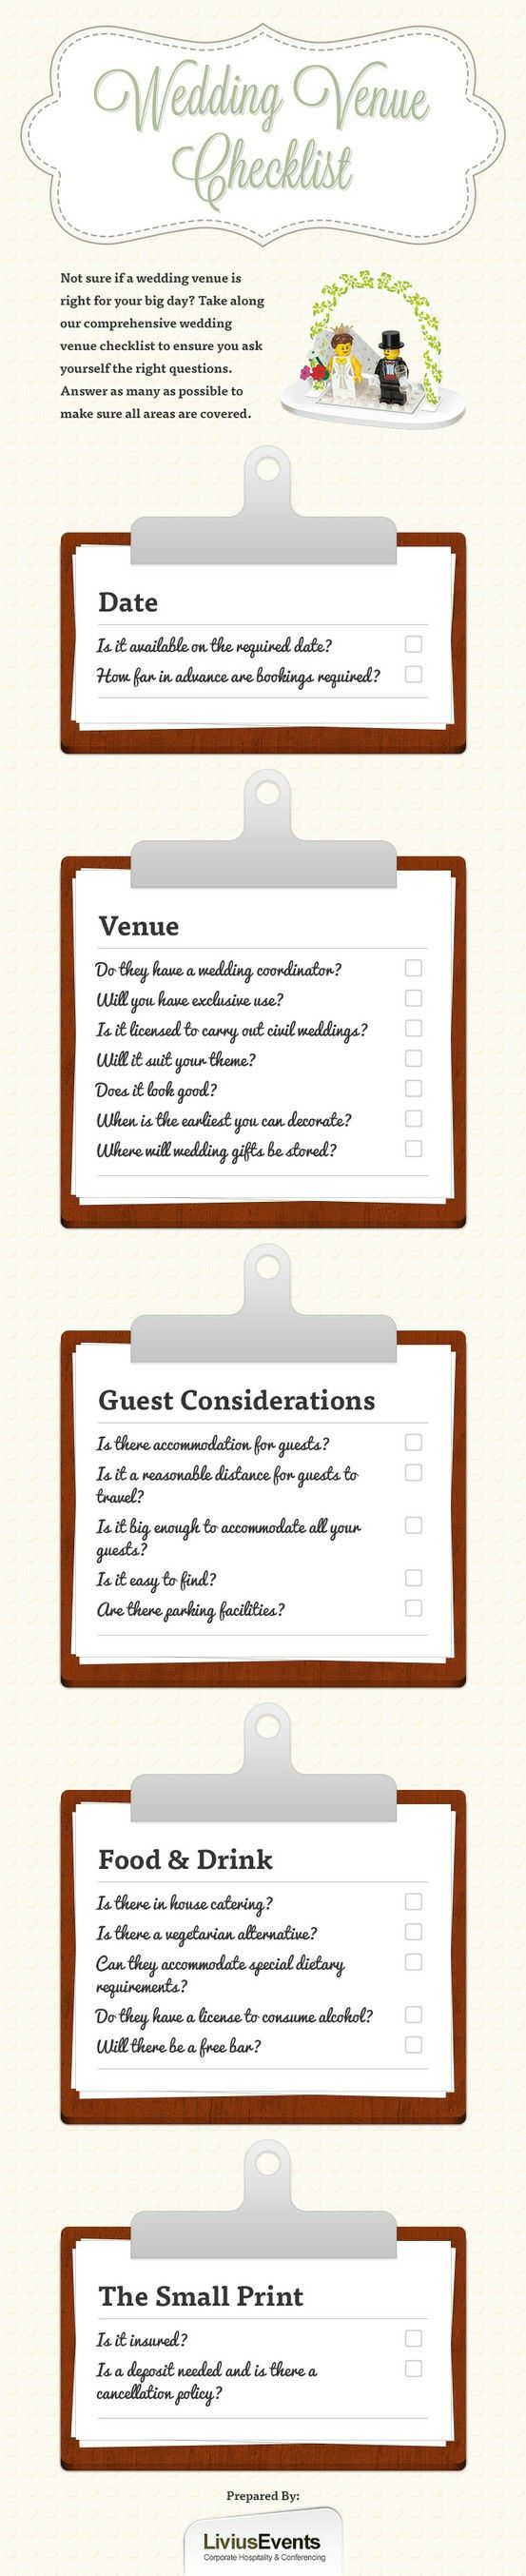 Not Sure If A Wedding Venue Meets All Requirements Use This Visual Checklist